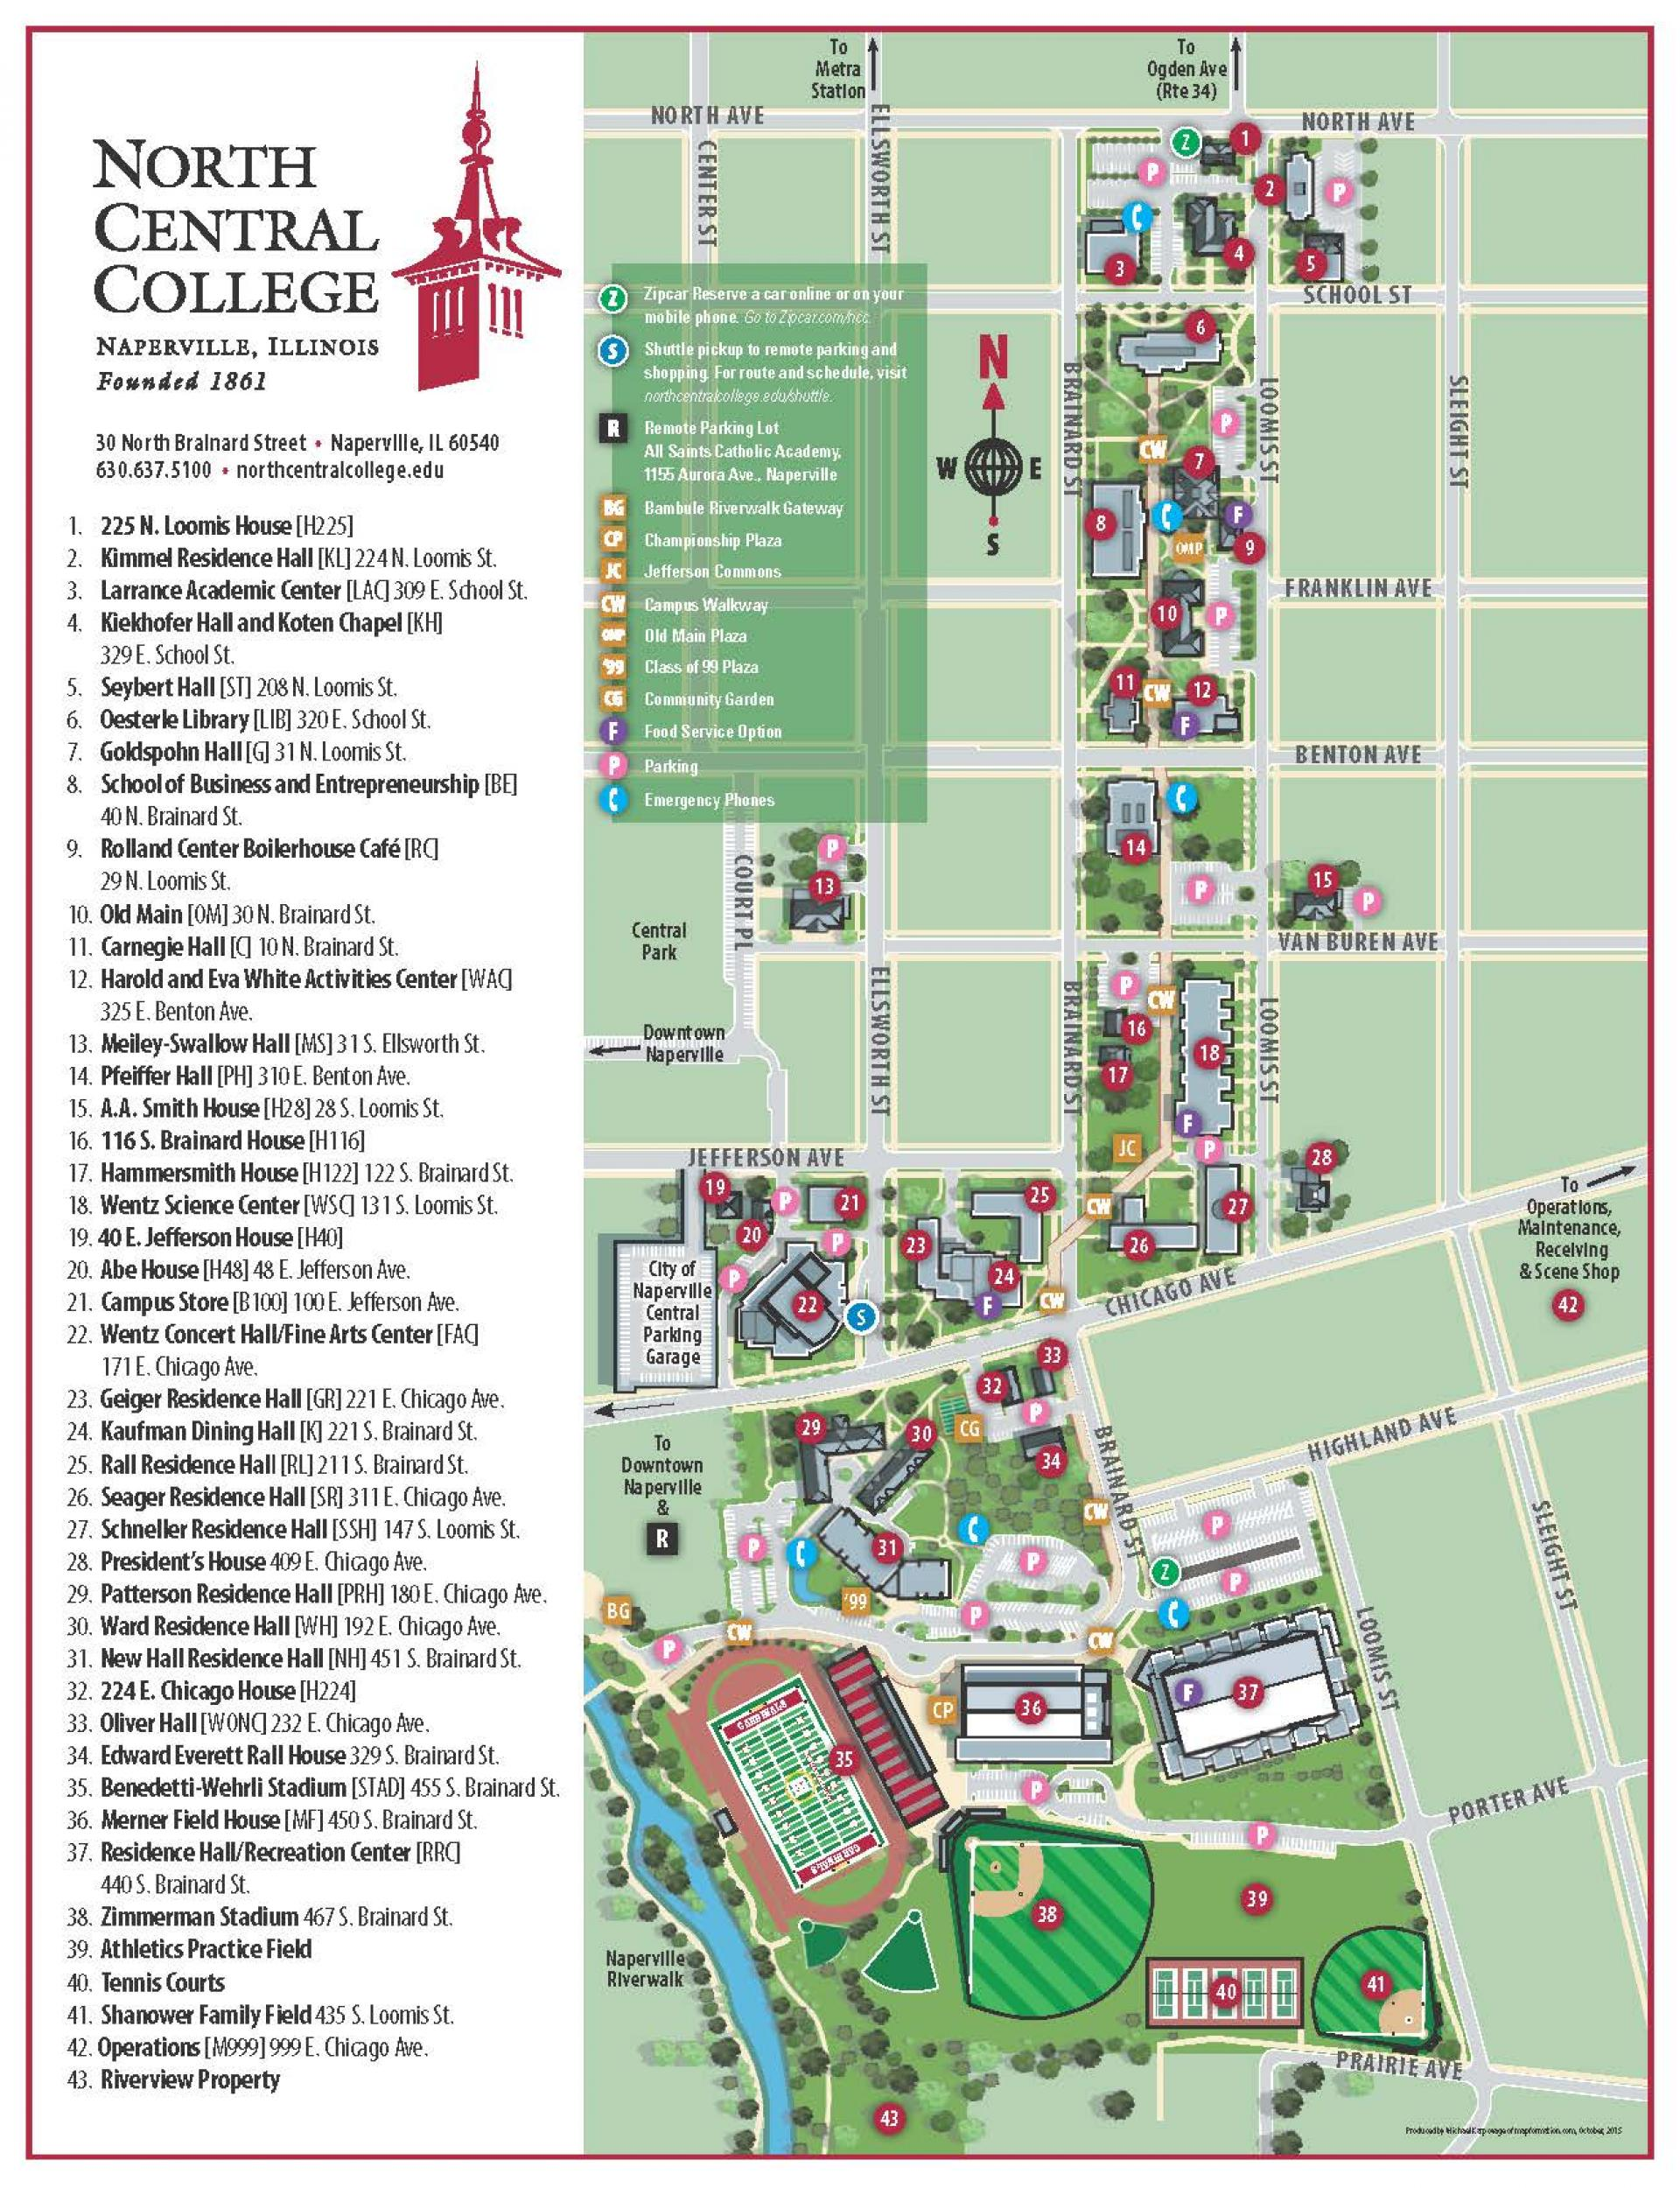 The 2018 edition of the North Central College campus map.